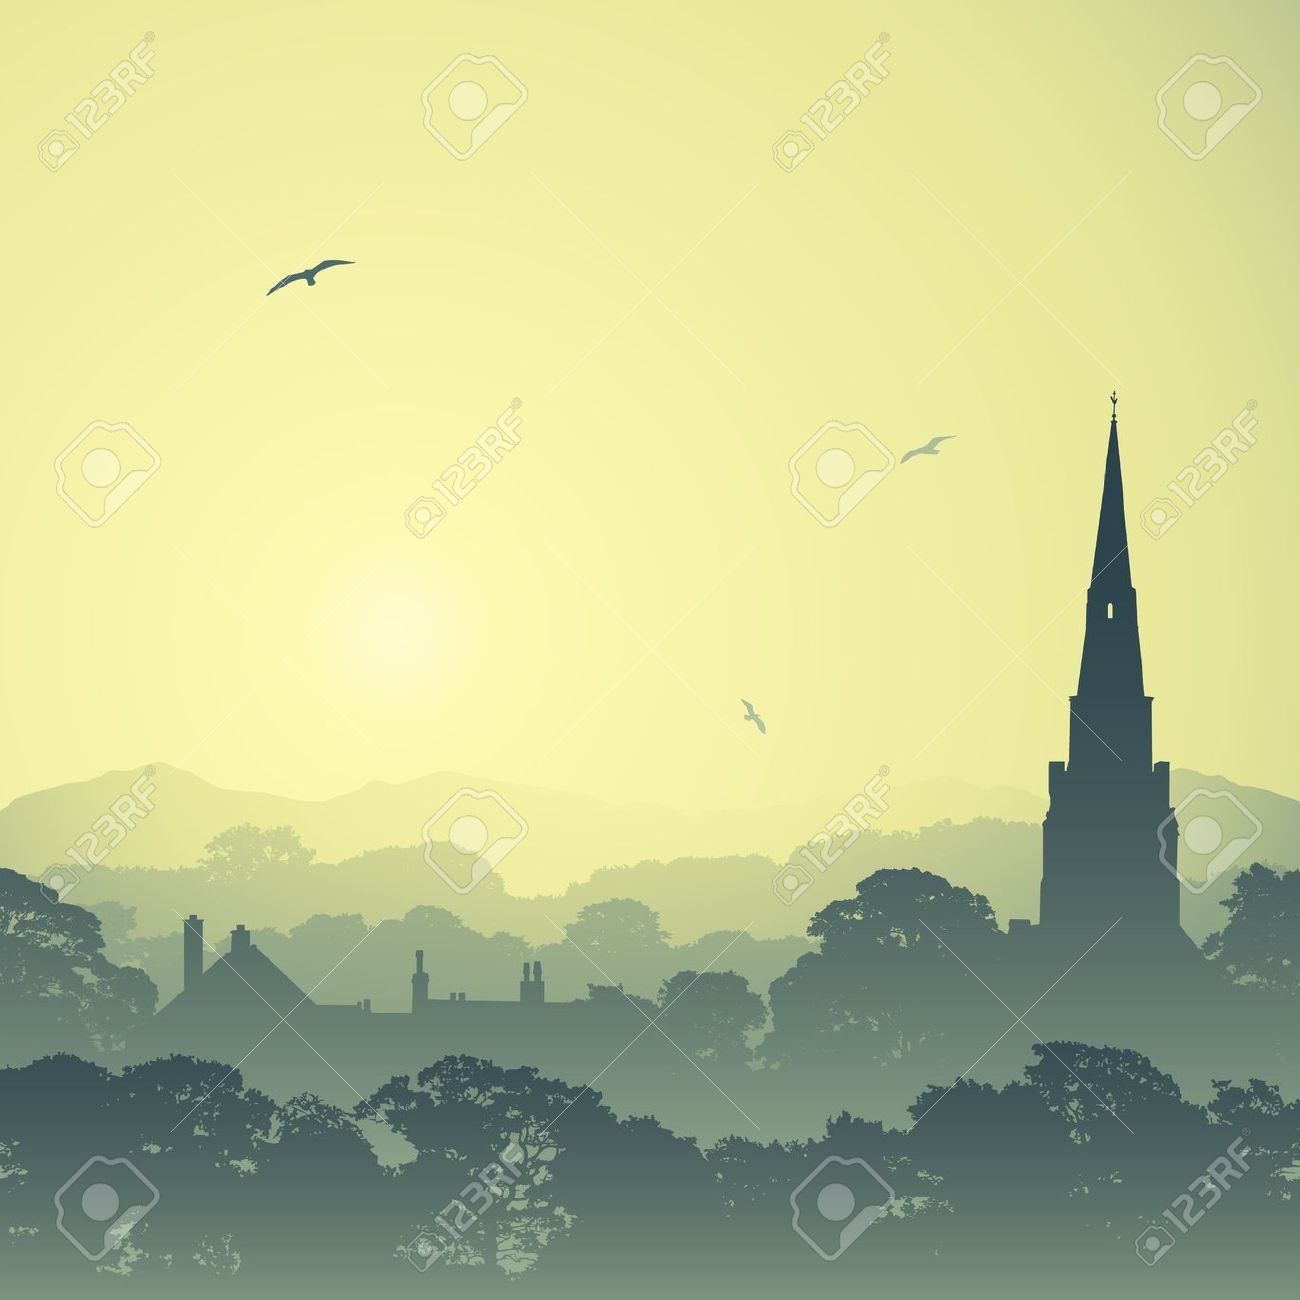 A Country Landscape With Church Spire And Trees Royalty Free.